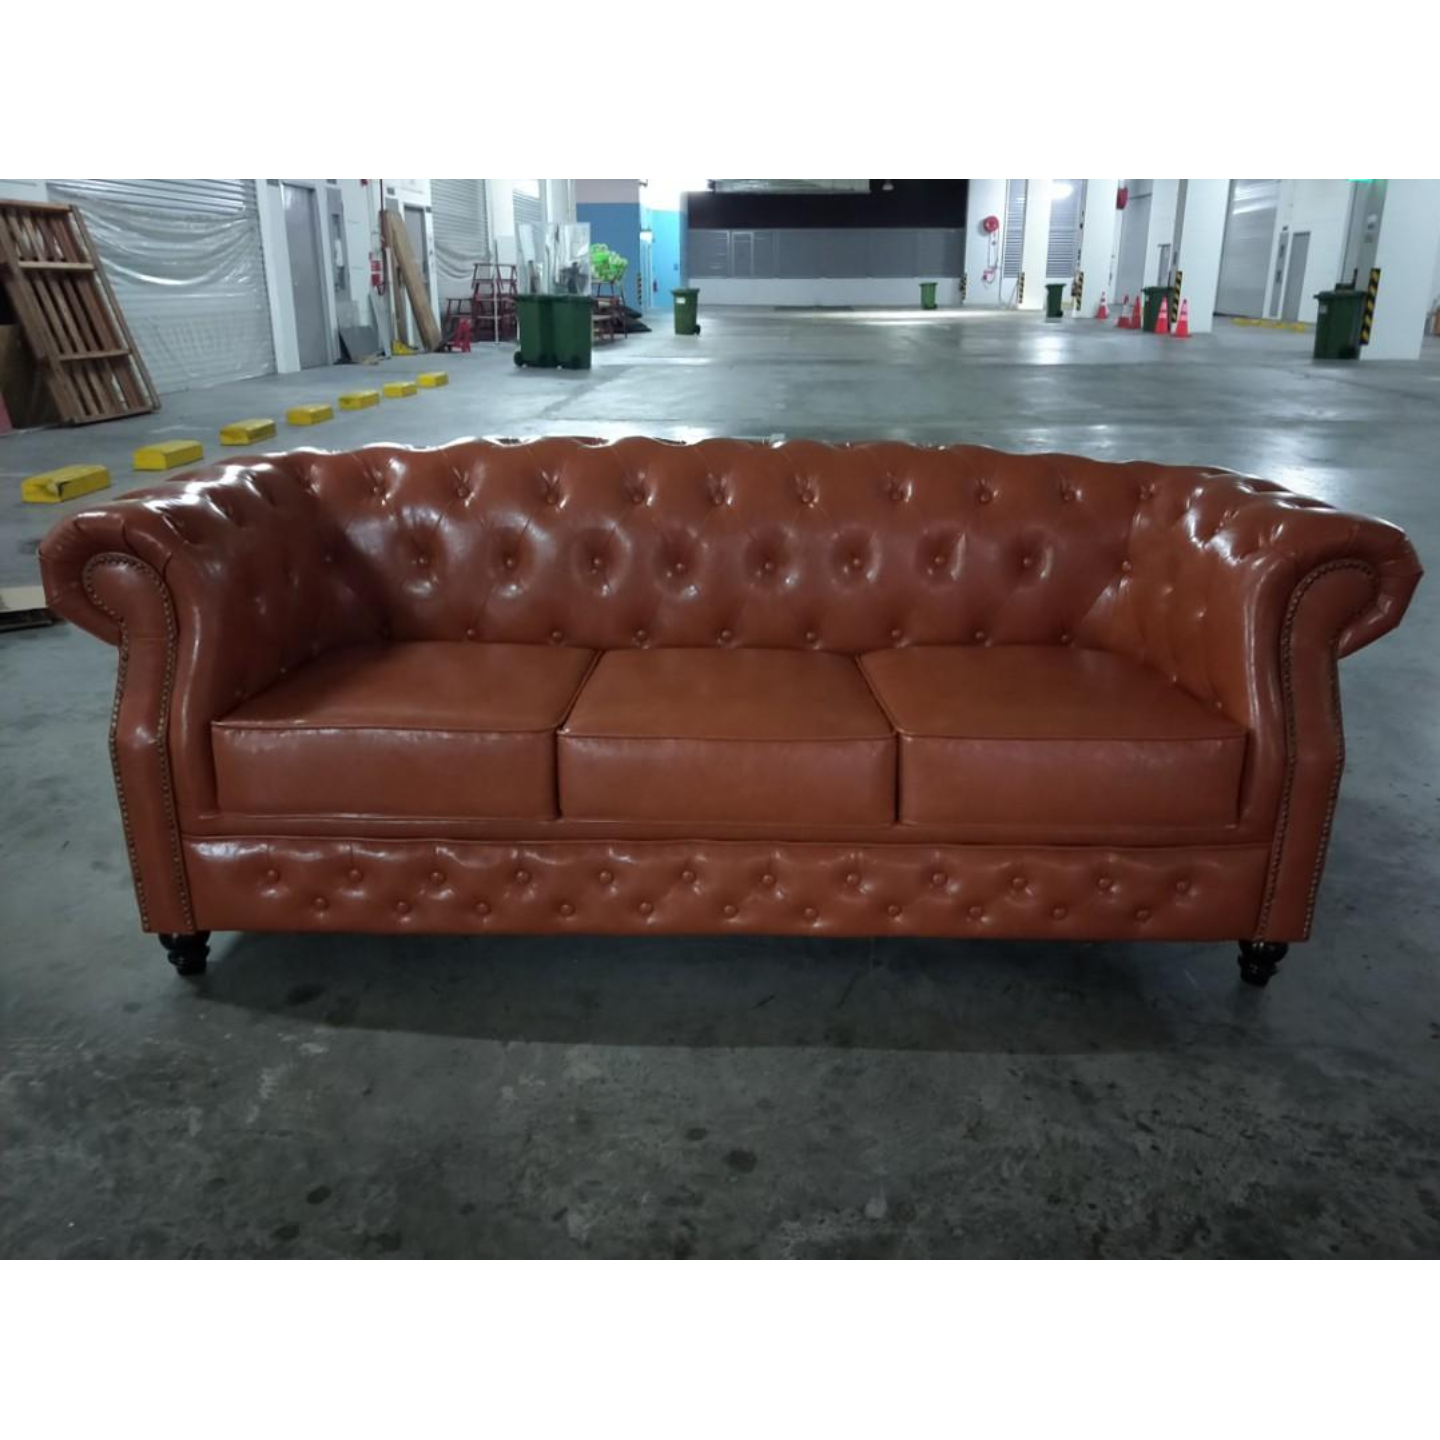 BOTTEVA Chesterfield 3 Seater Sofa in BROWN PU